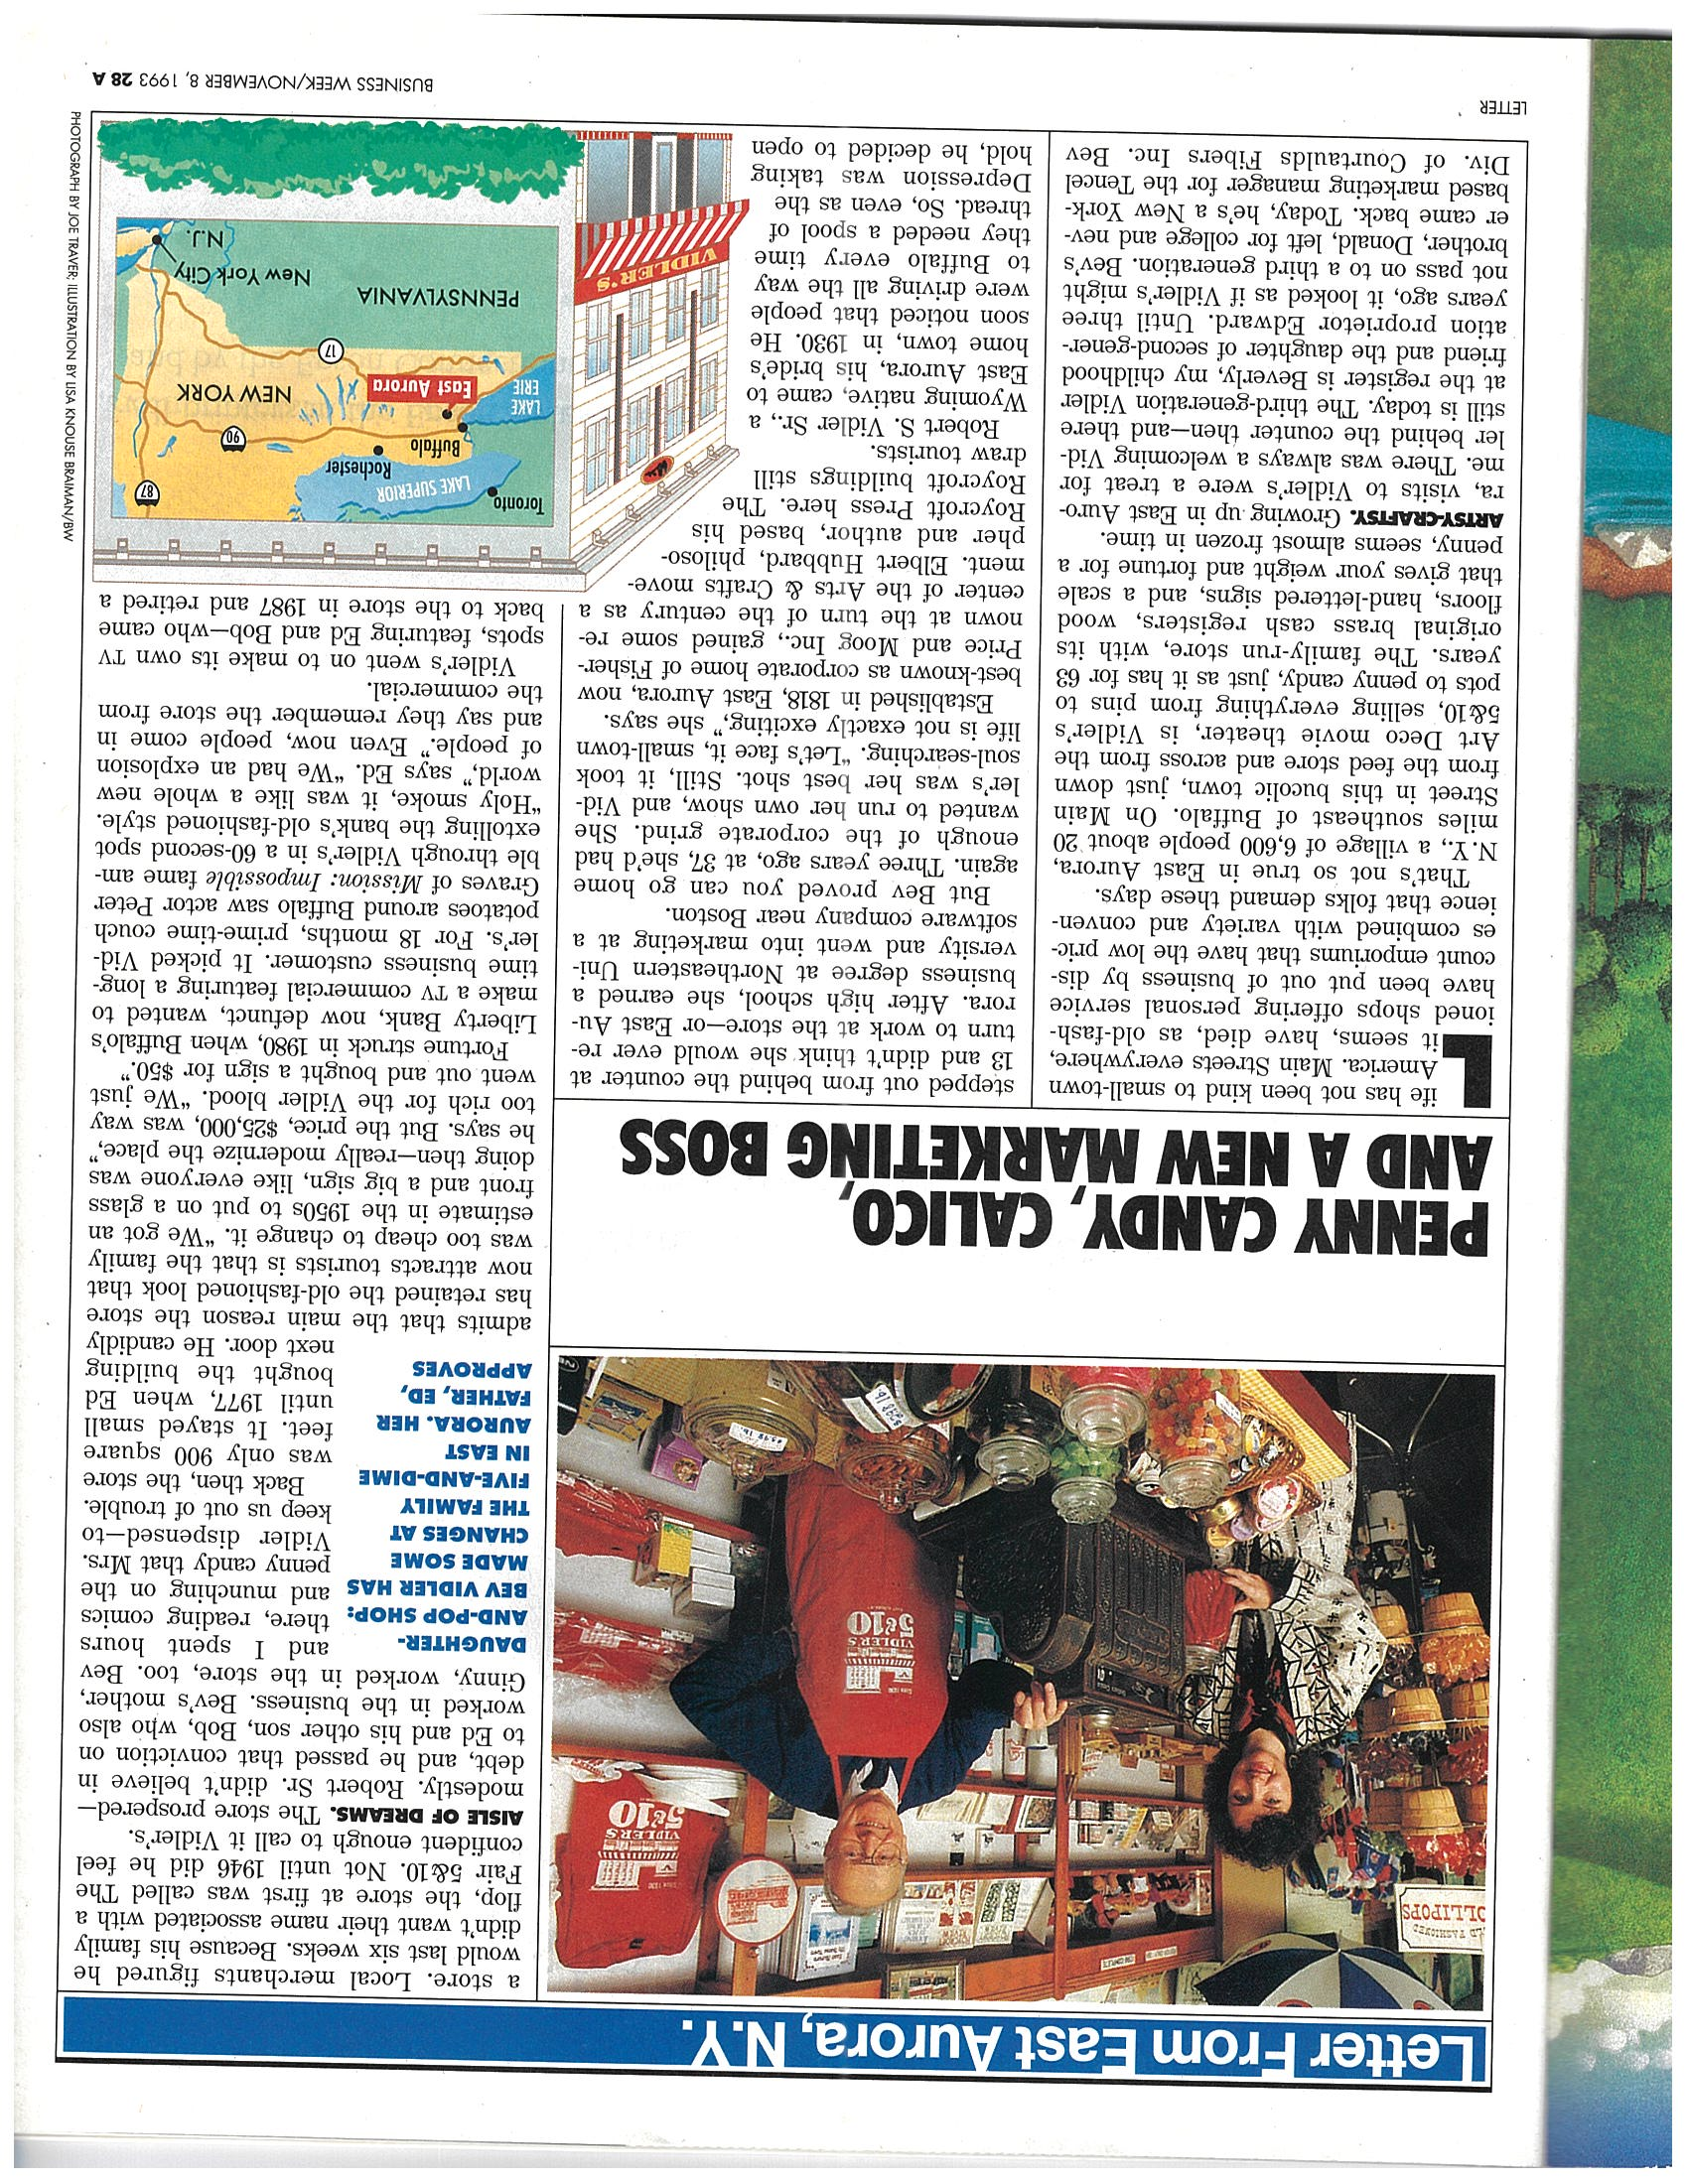 Store gets national recognition with stories in Business Week and Martha Stewart's Living